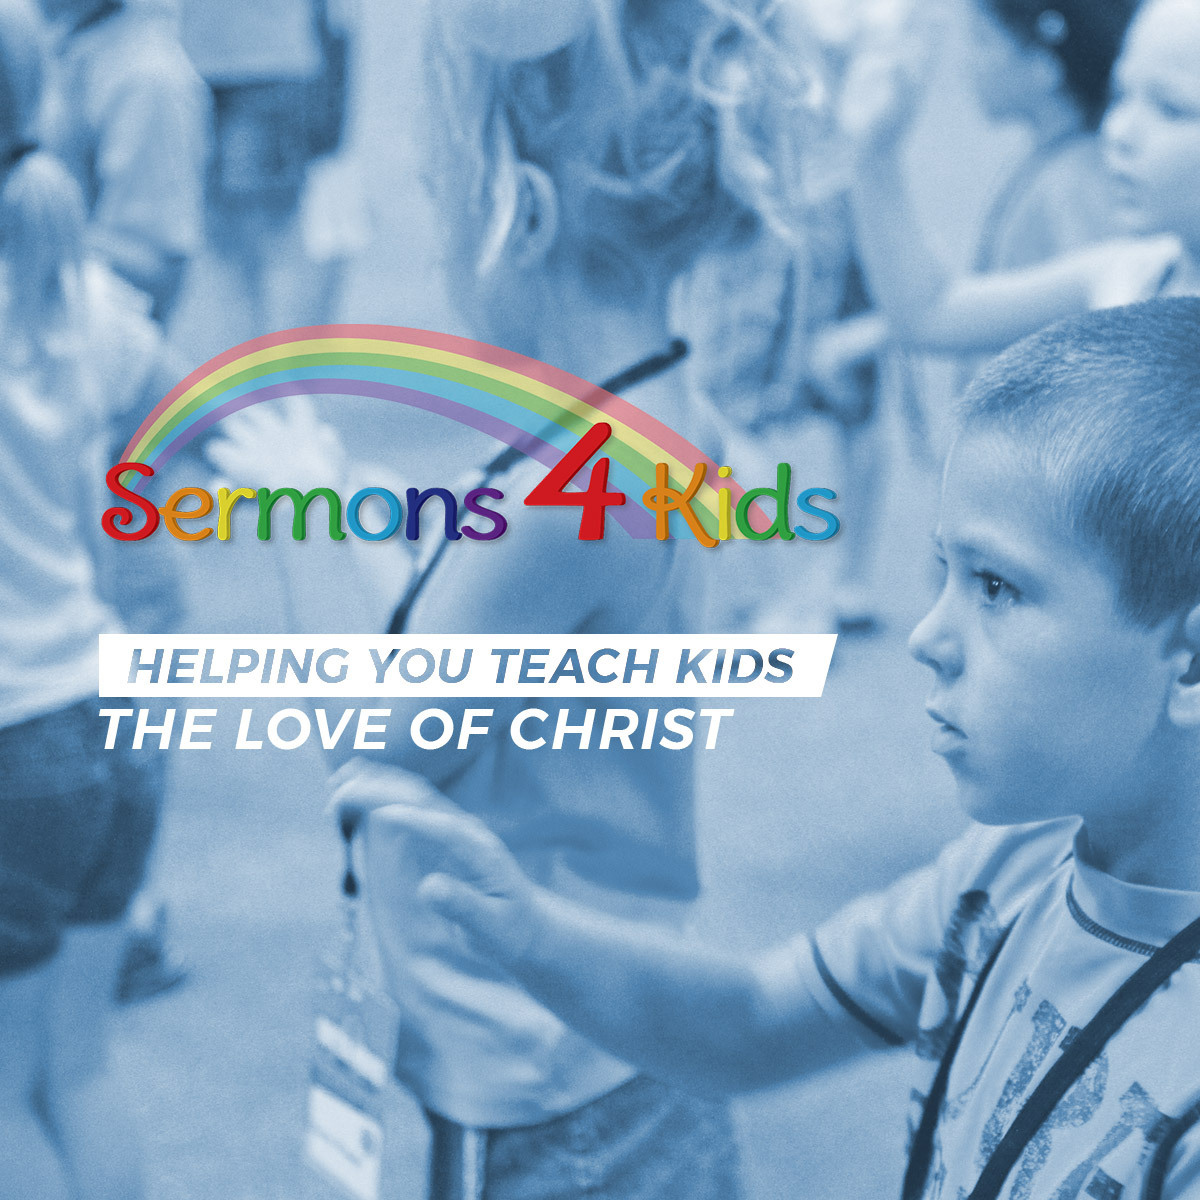 Children's Sermons from Sermons 4 Kids | Object Lessons